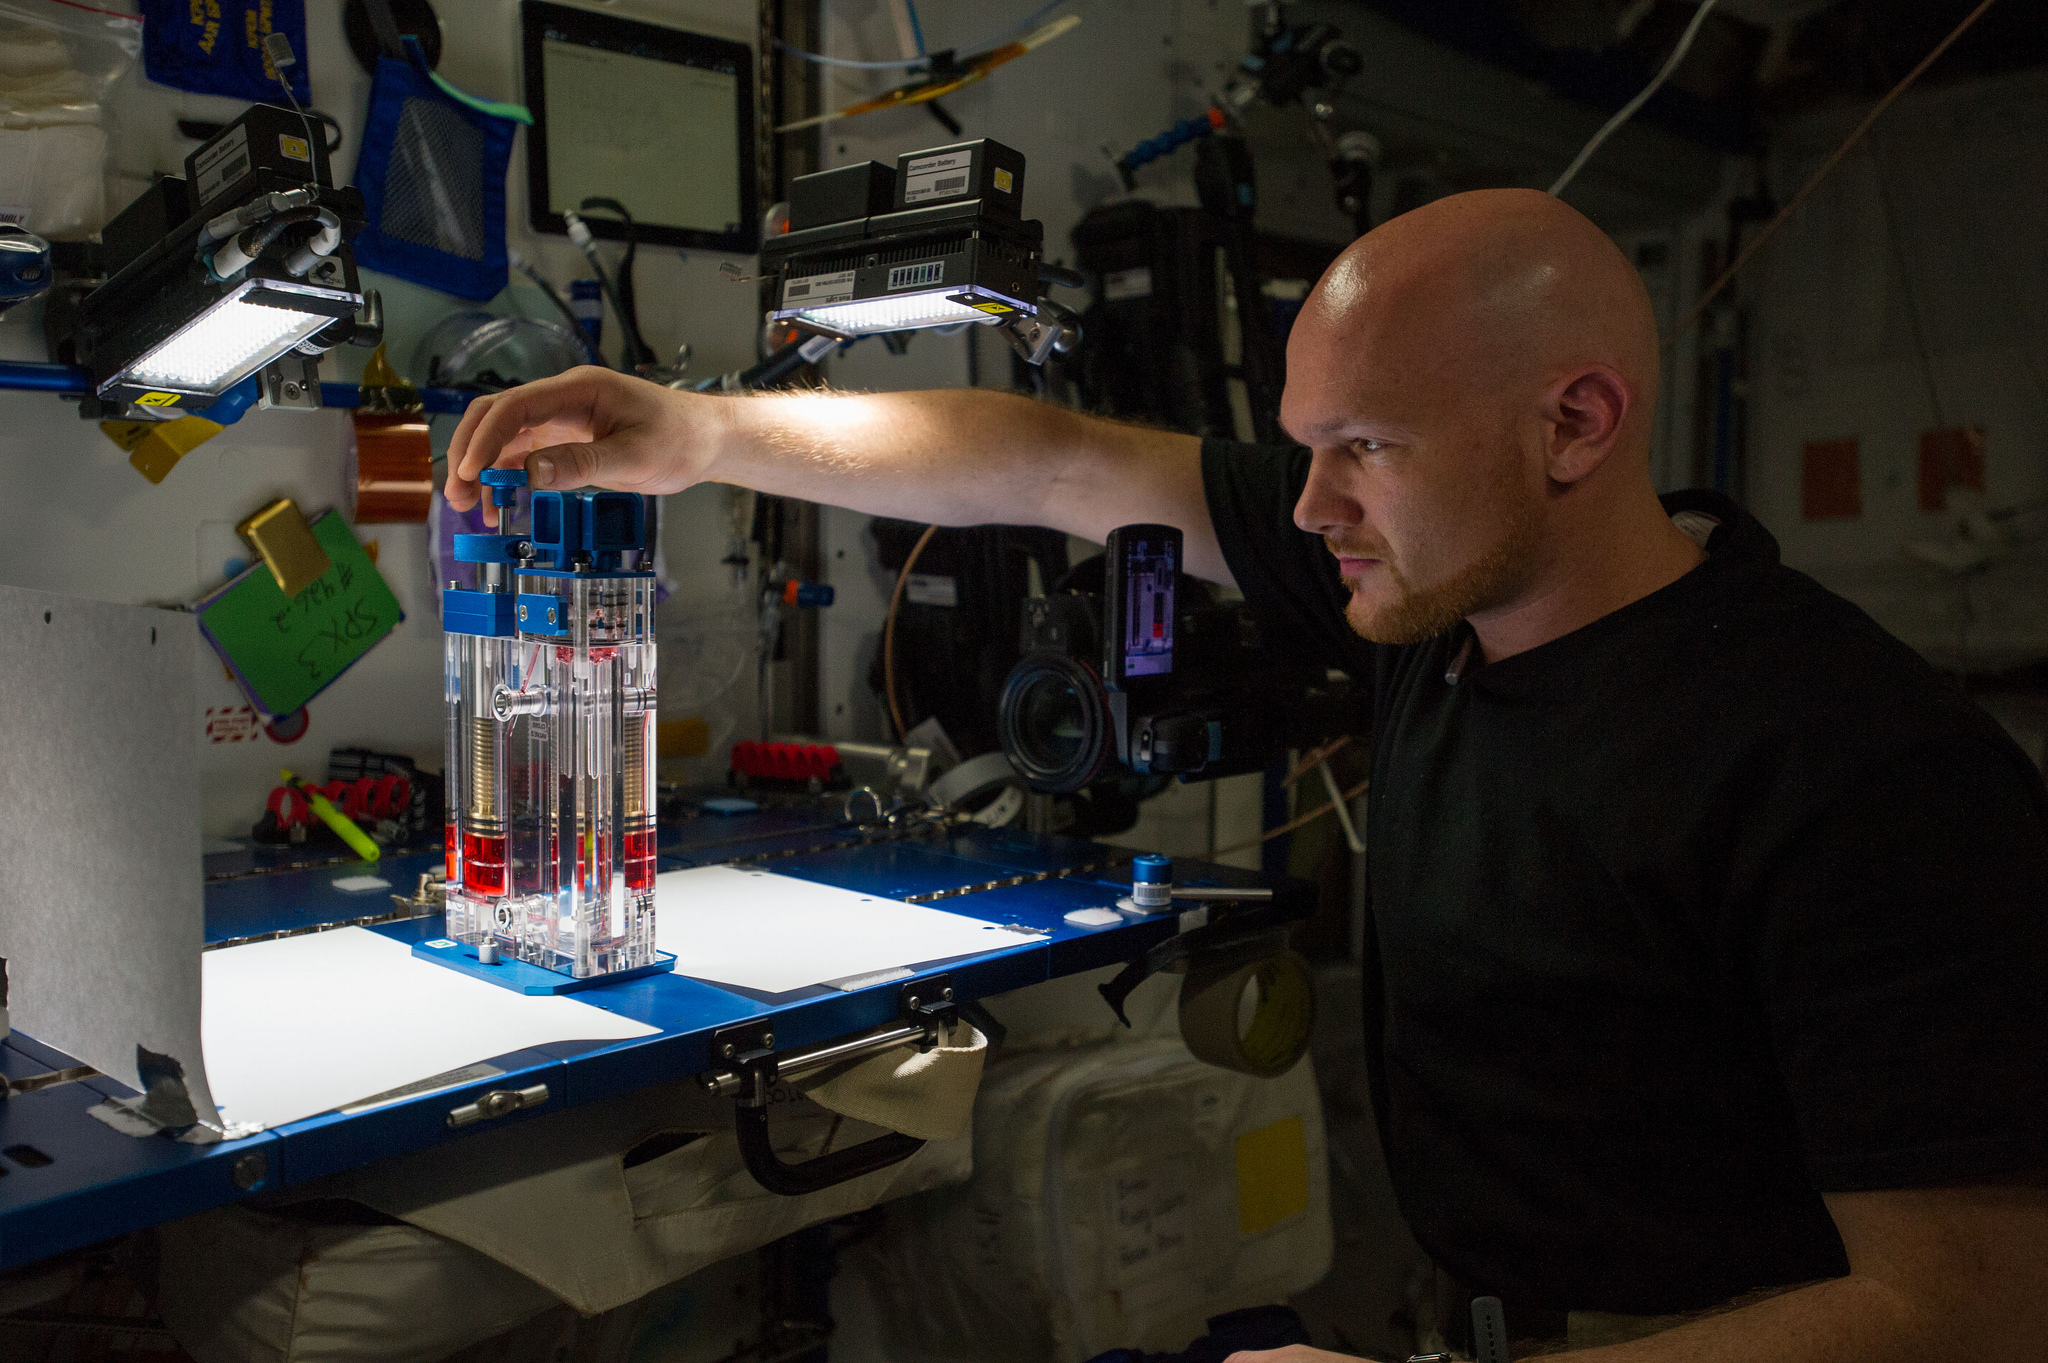 ESA astronaut Alexander Gerst works with a capillary flow experiment on the International Space Station. Credit: NASA